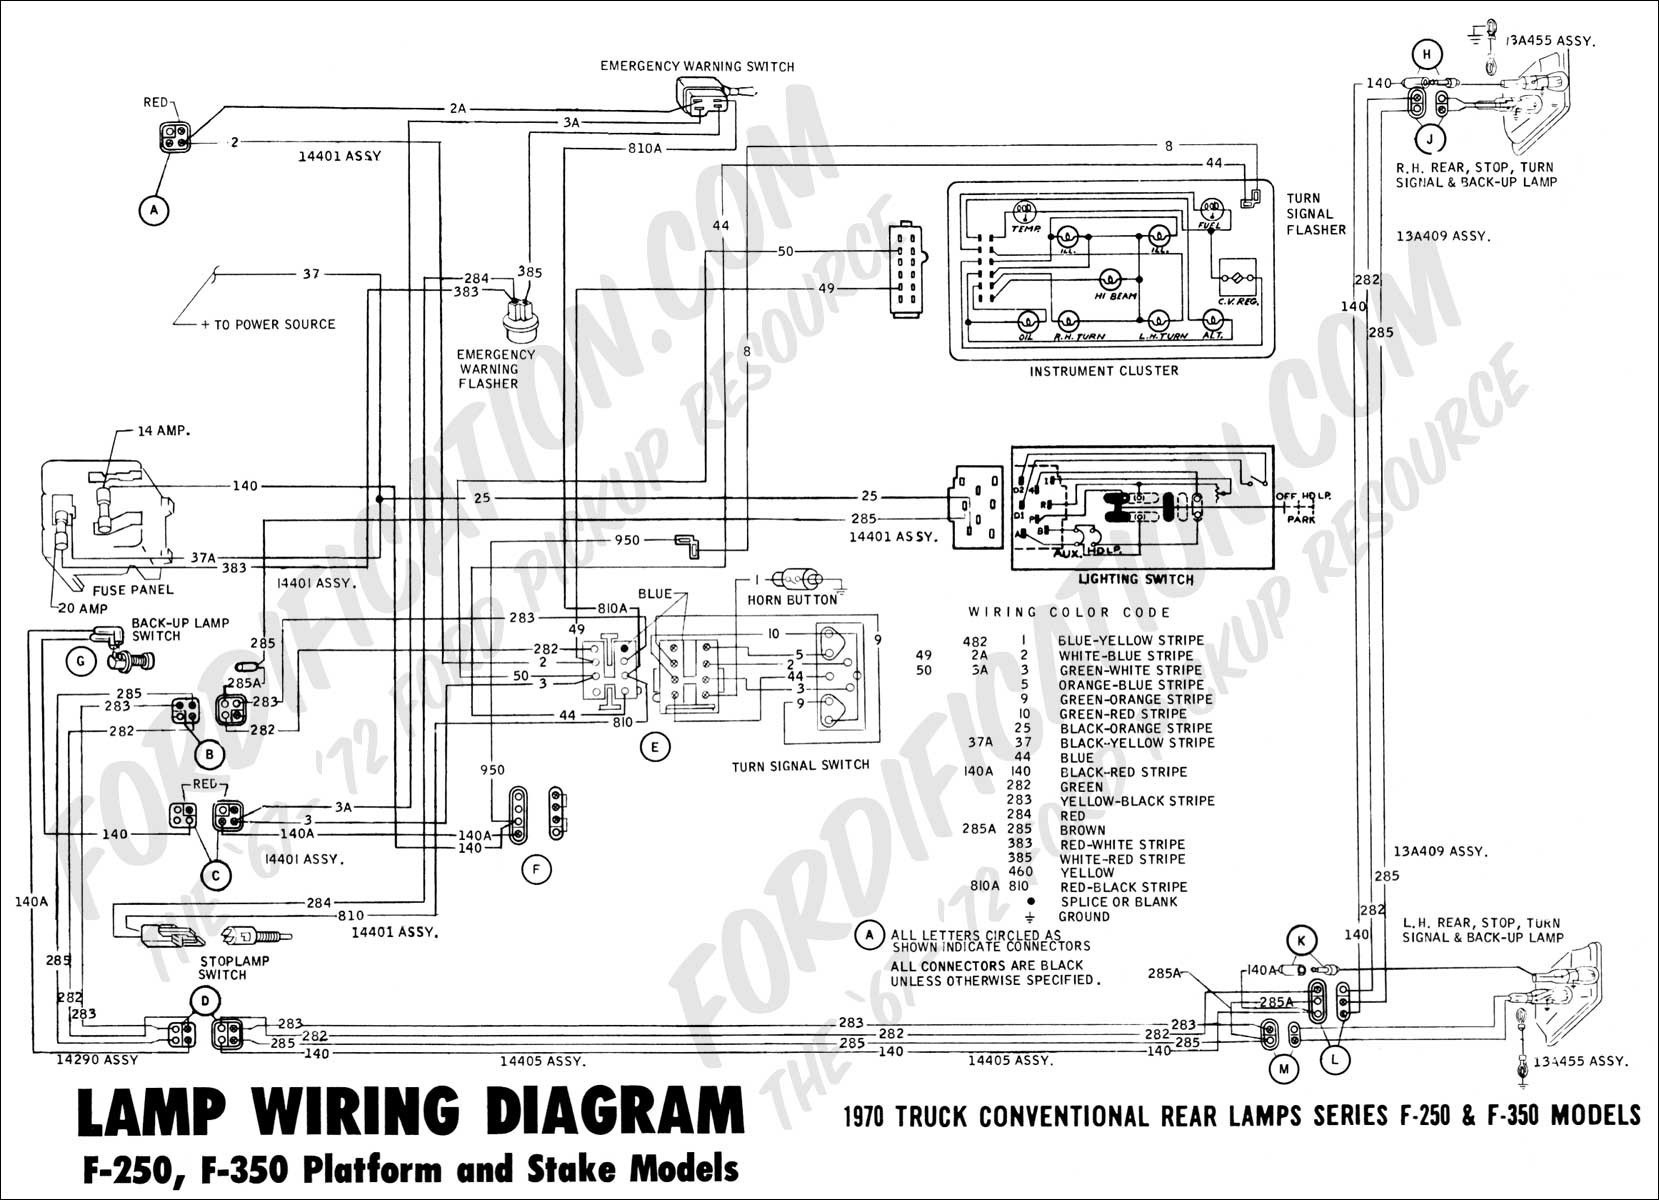 1979 f250 tail light wiring diagram house wiring diagram symbols u2022 rh maxturner co Ford F-250 Fuse Box Layout Ford F-250 Fuse Box Layout